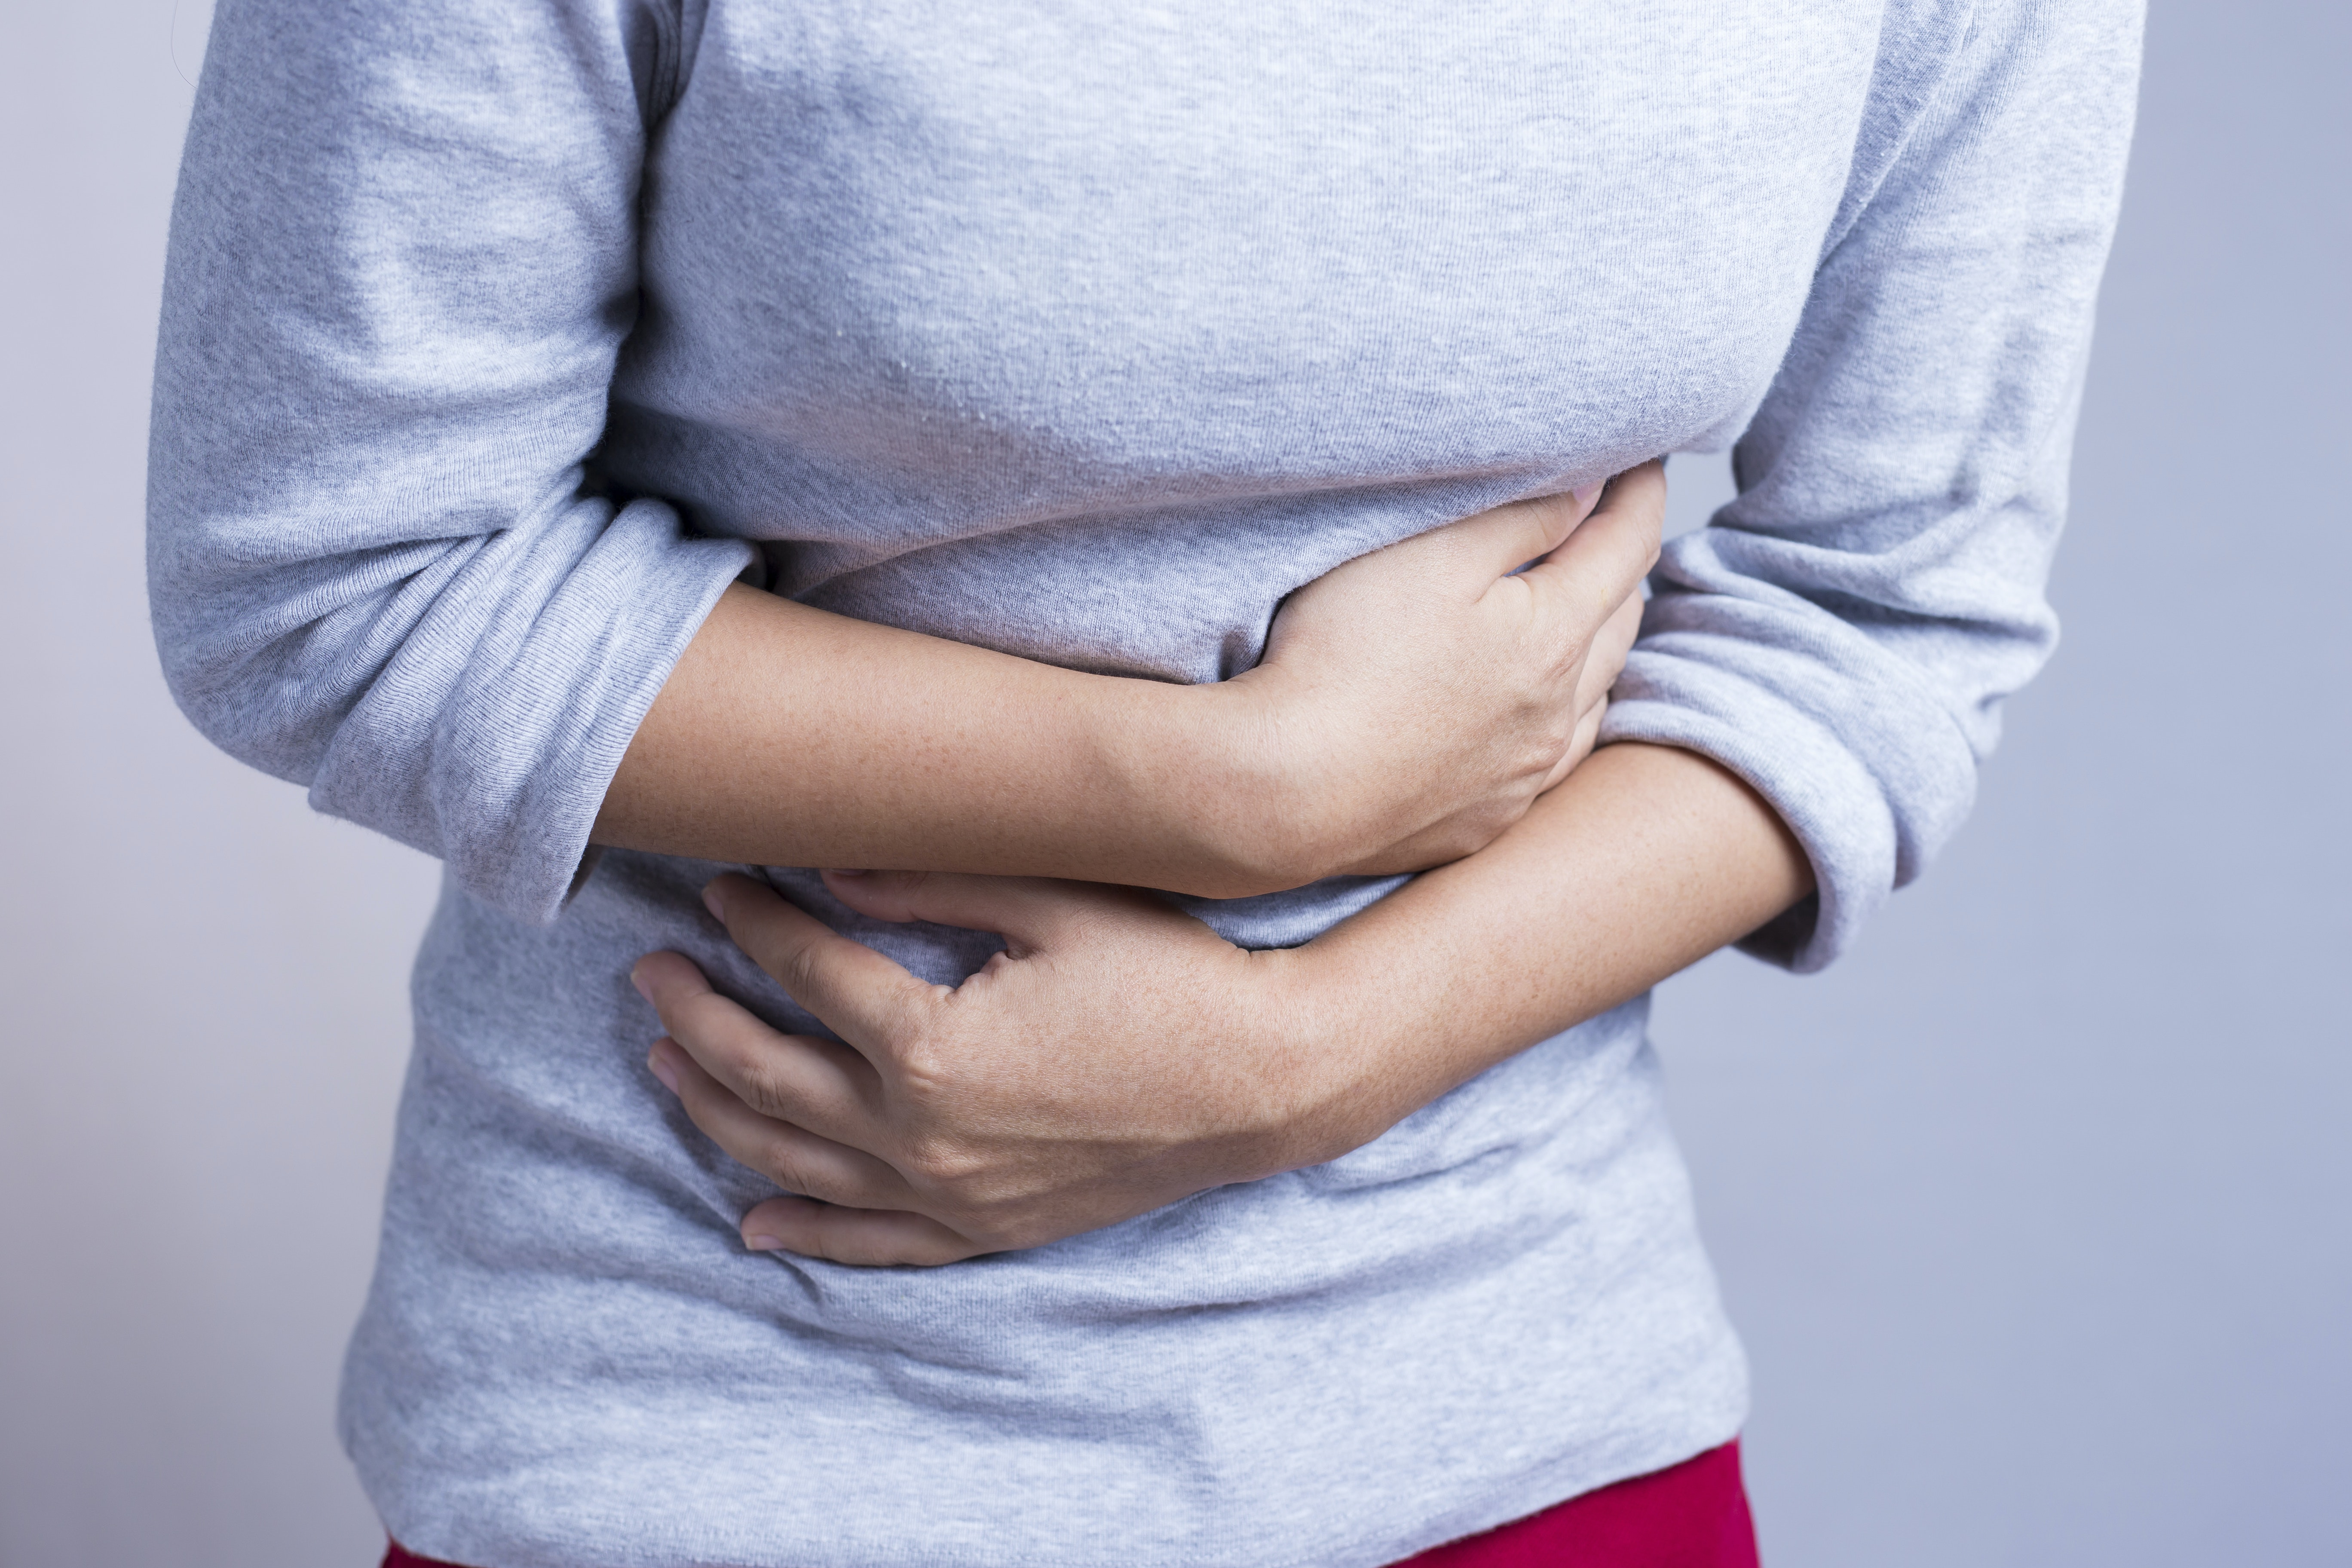 An image depicting a person suffering from pain in the upper left abdomen symptoms